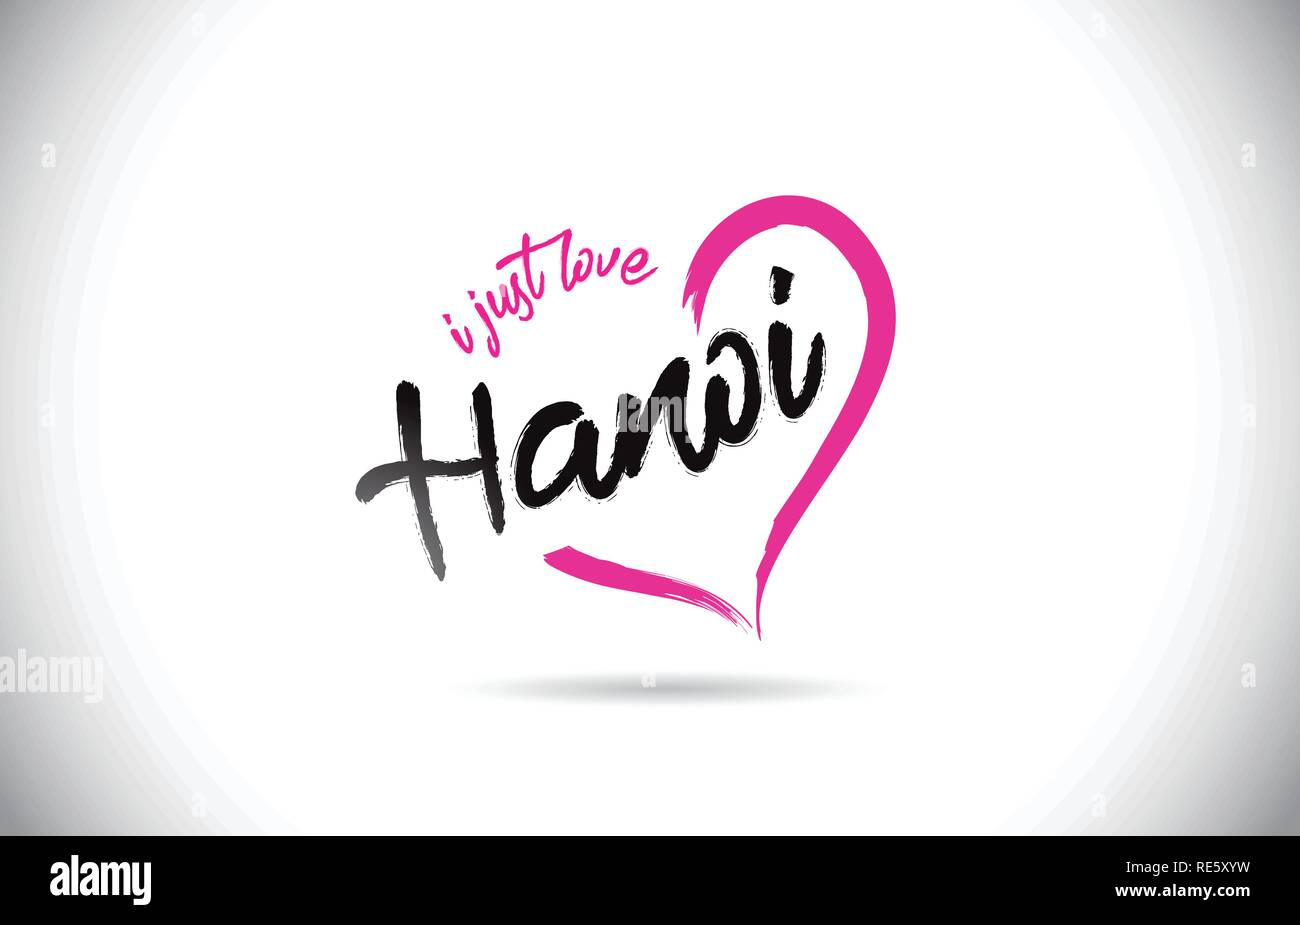 Hanoi I Just Love Word Text with Handwritten Font and Pink Heart Shape Vector Illustration. - Stock Vector